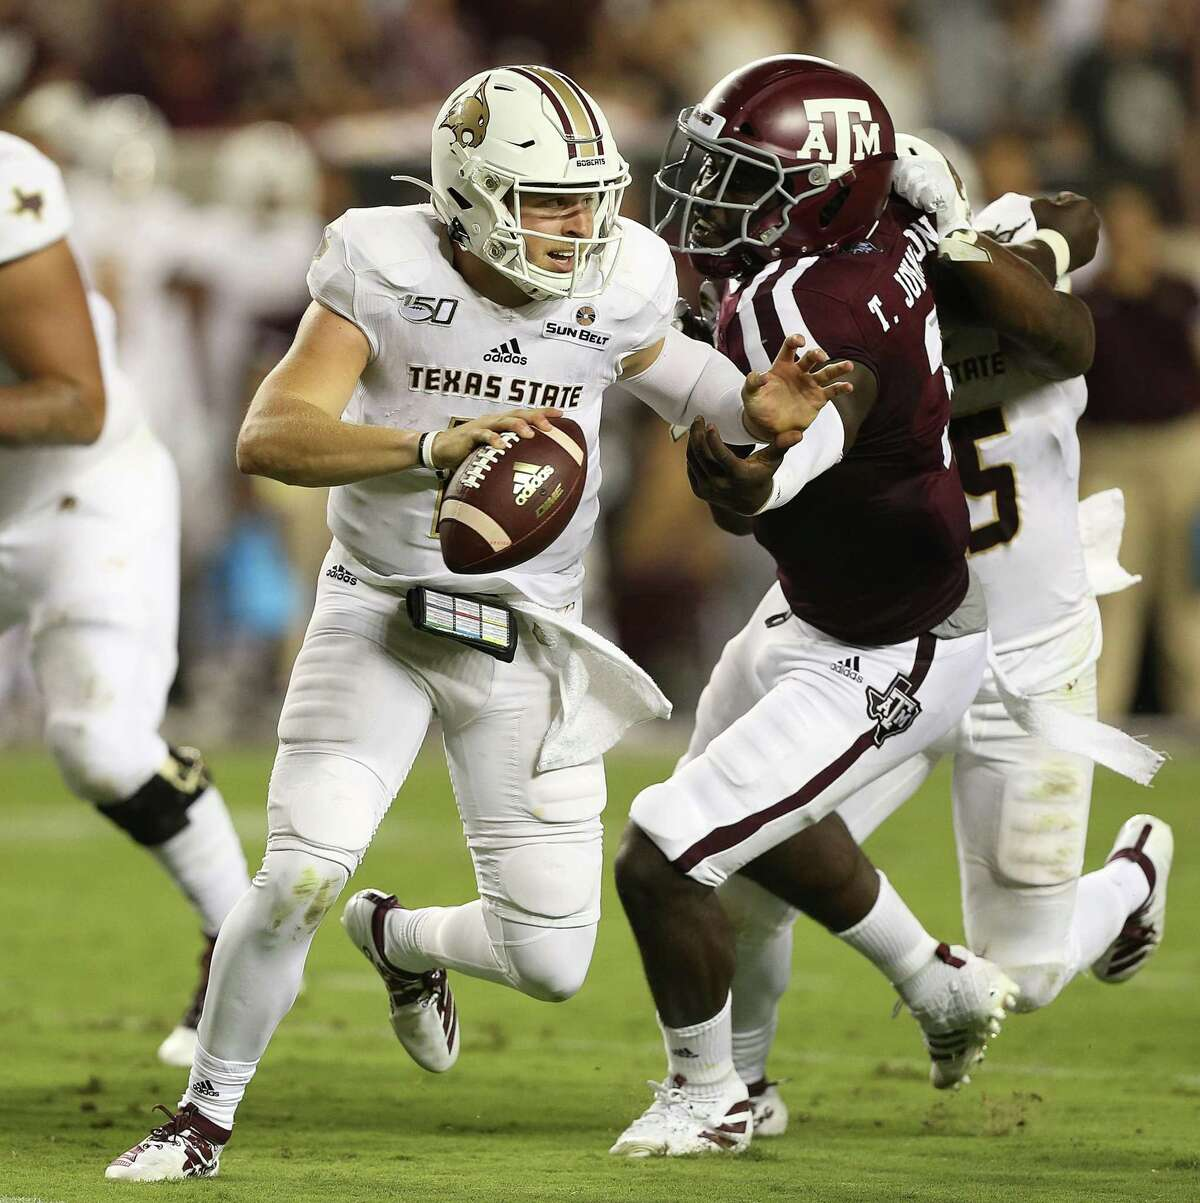 COLLEGE STATION, TEXAS - AUGUST 29: Tyler Vitt #11 of the Texas State Bobcats scrambles out of the pocket as Tyree Johnson #3 of the Texas A&M Aggies pursues in the first half at Kyle Field on August 29, 2019 in College Station, Texas. (Photo by Bob Levey/Getty Images)